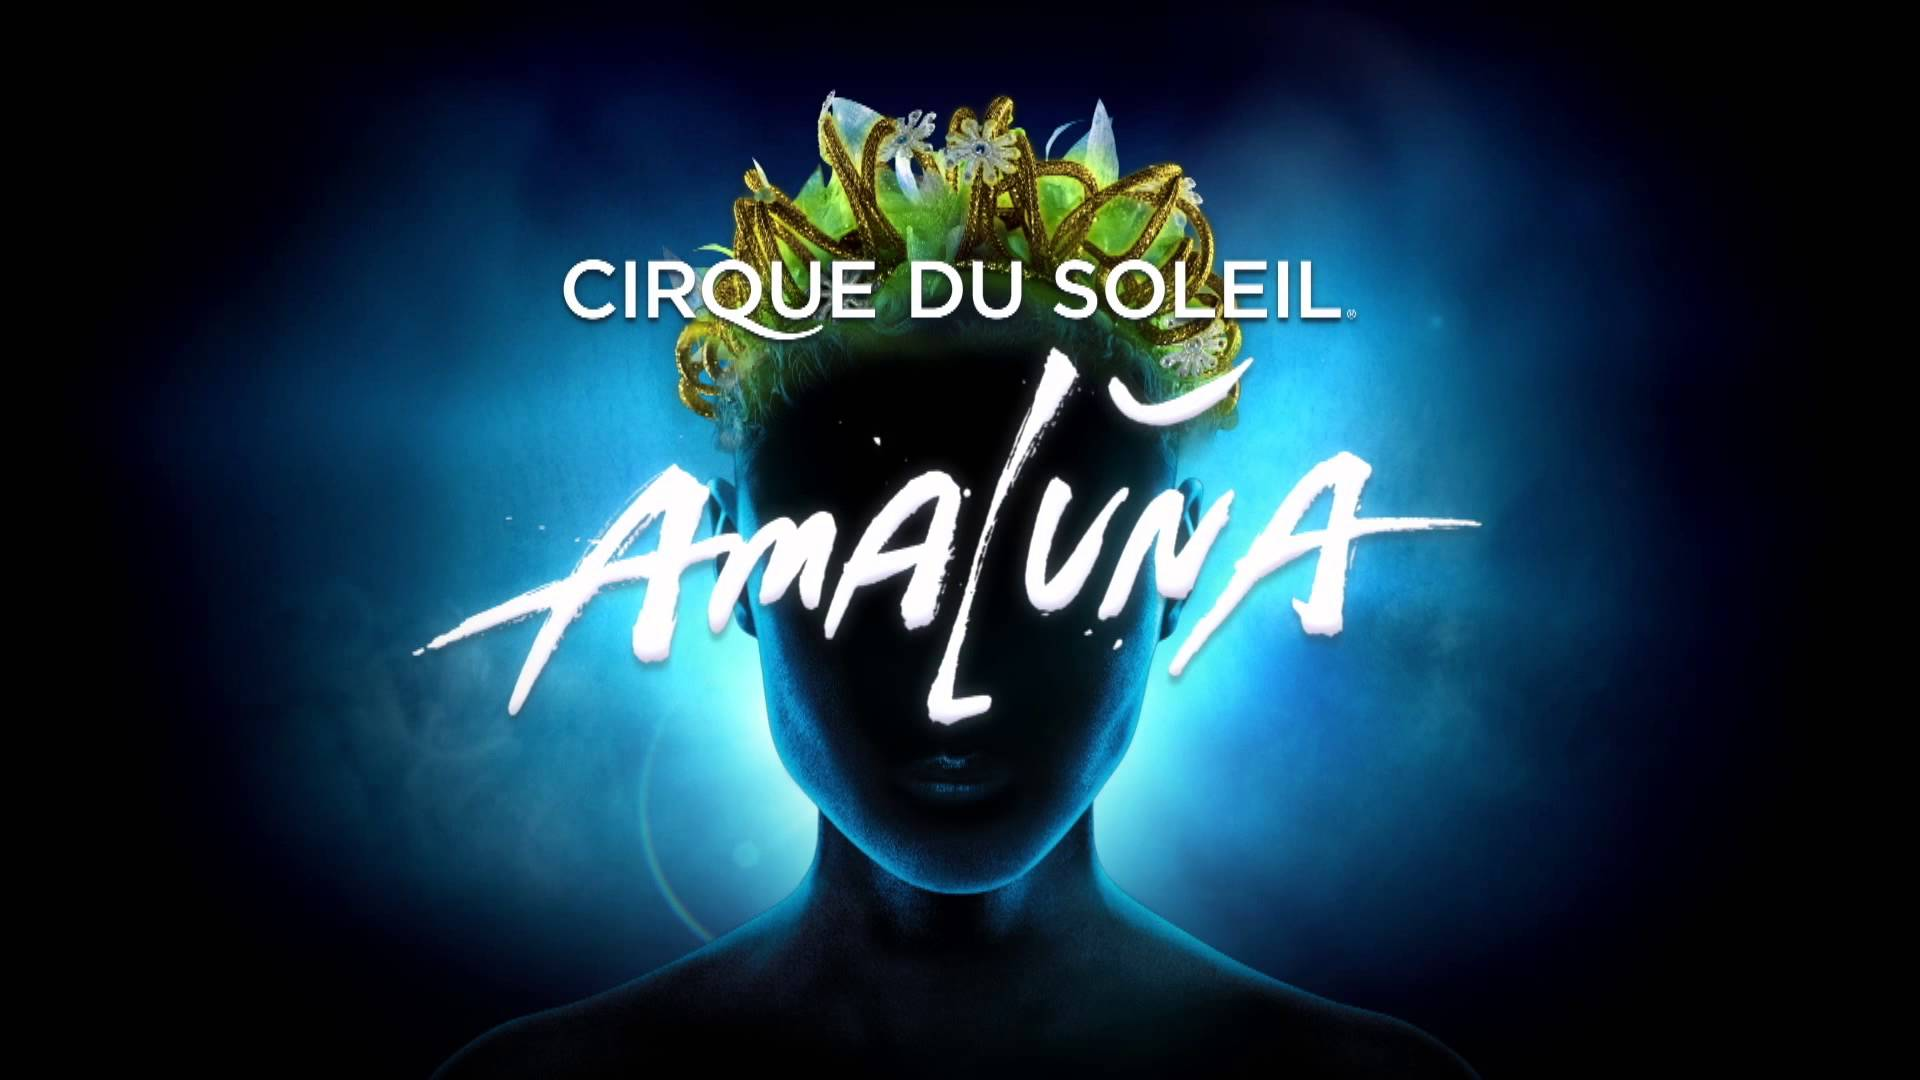 STAGE - Female Drummer performer for Cirque du Soleil's 'Amaluna' South America & China Tour (apply by 15th Oct)